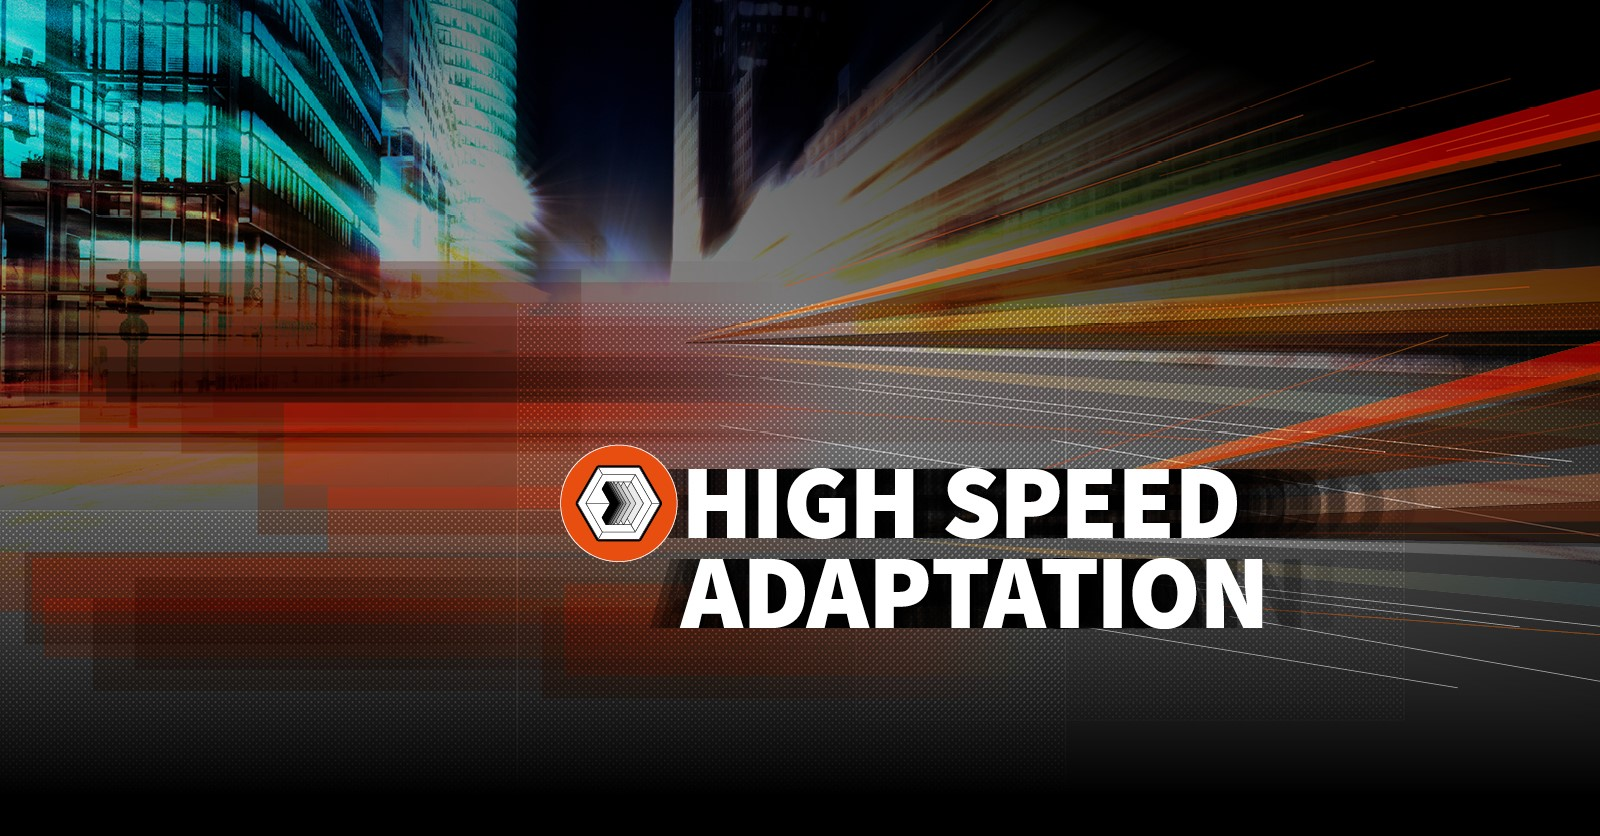 HIGH SPEED ADAPTATION